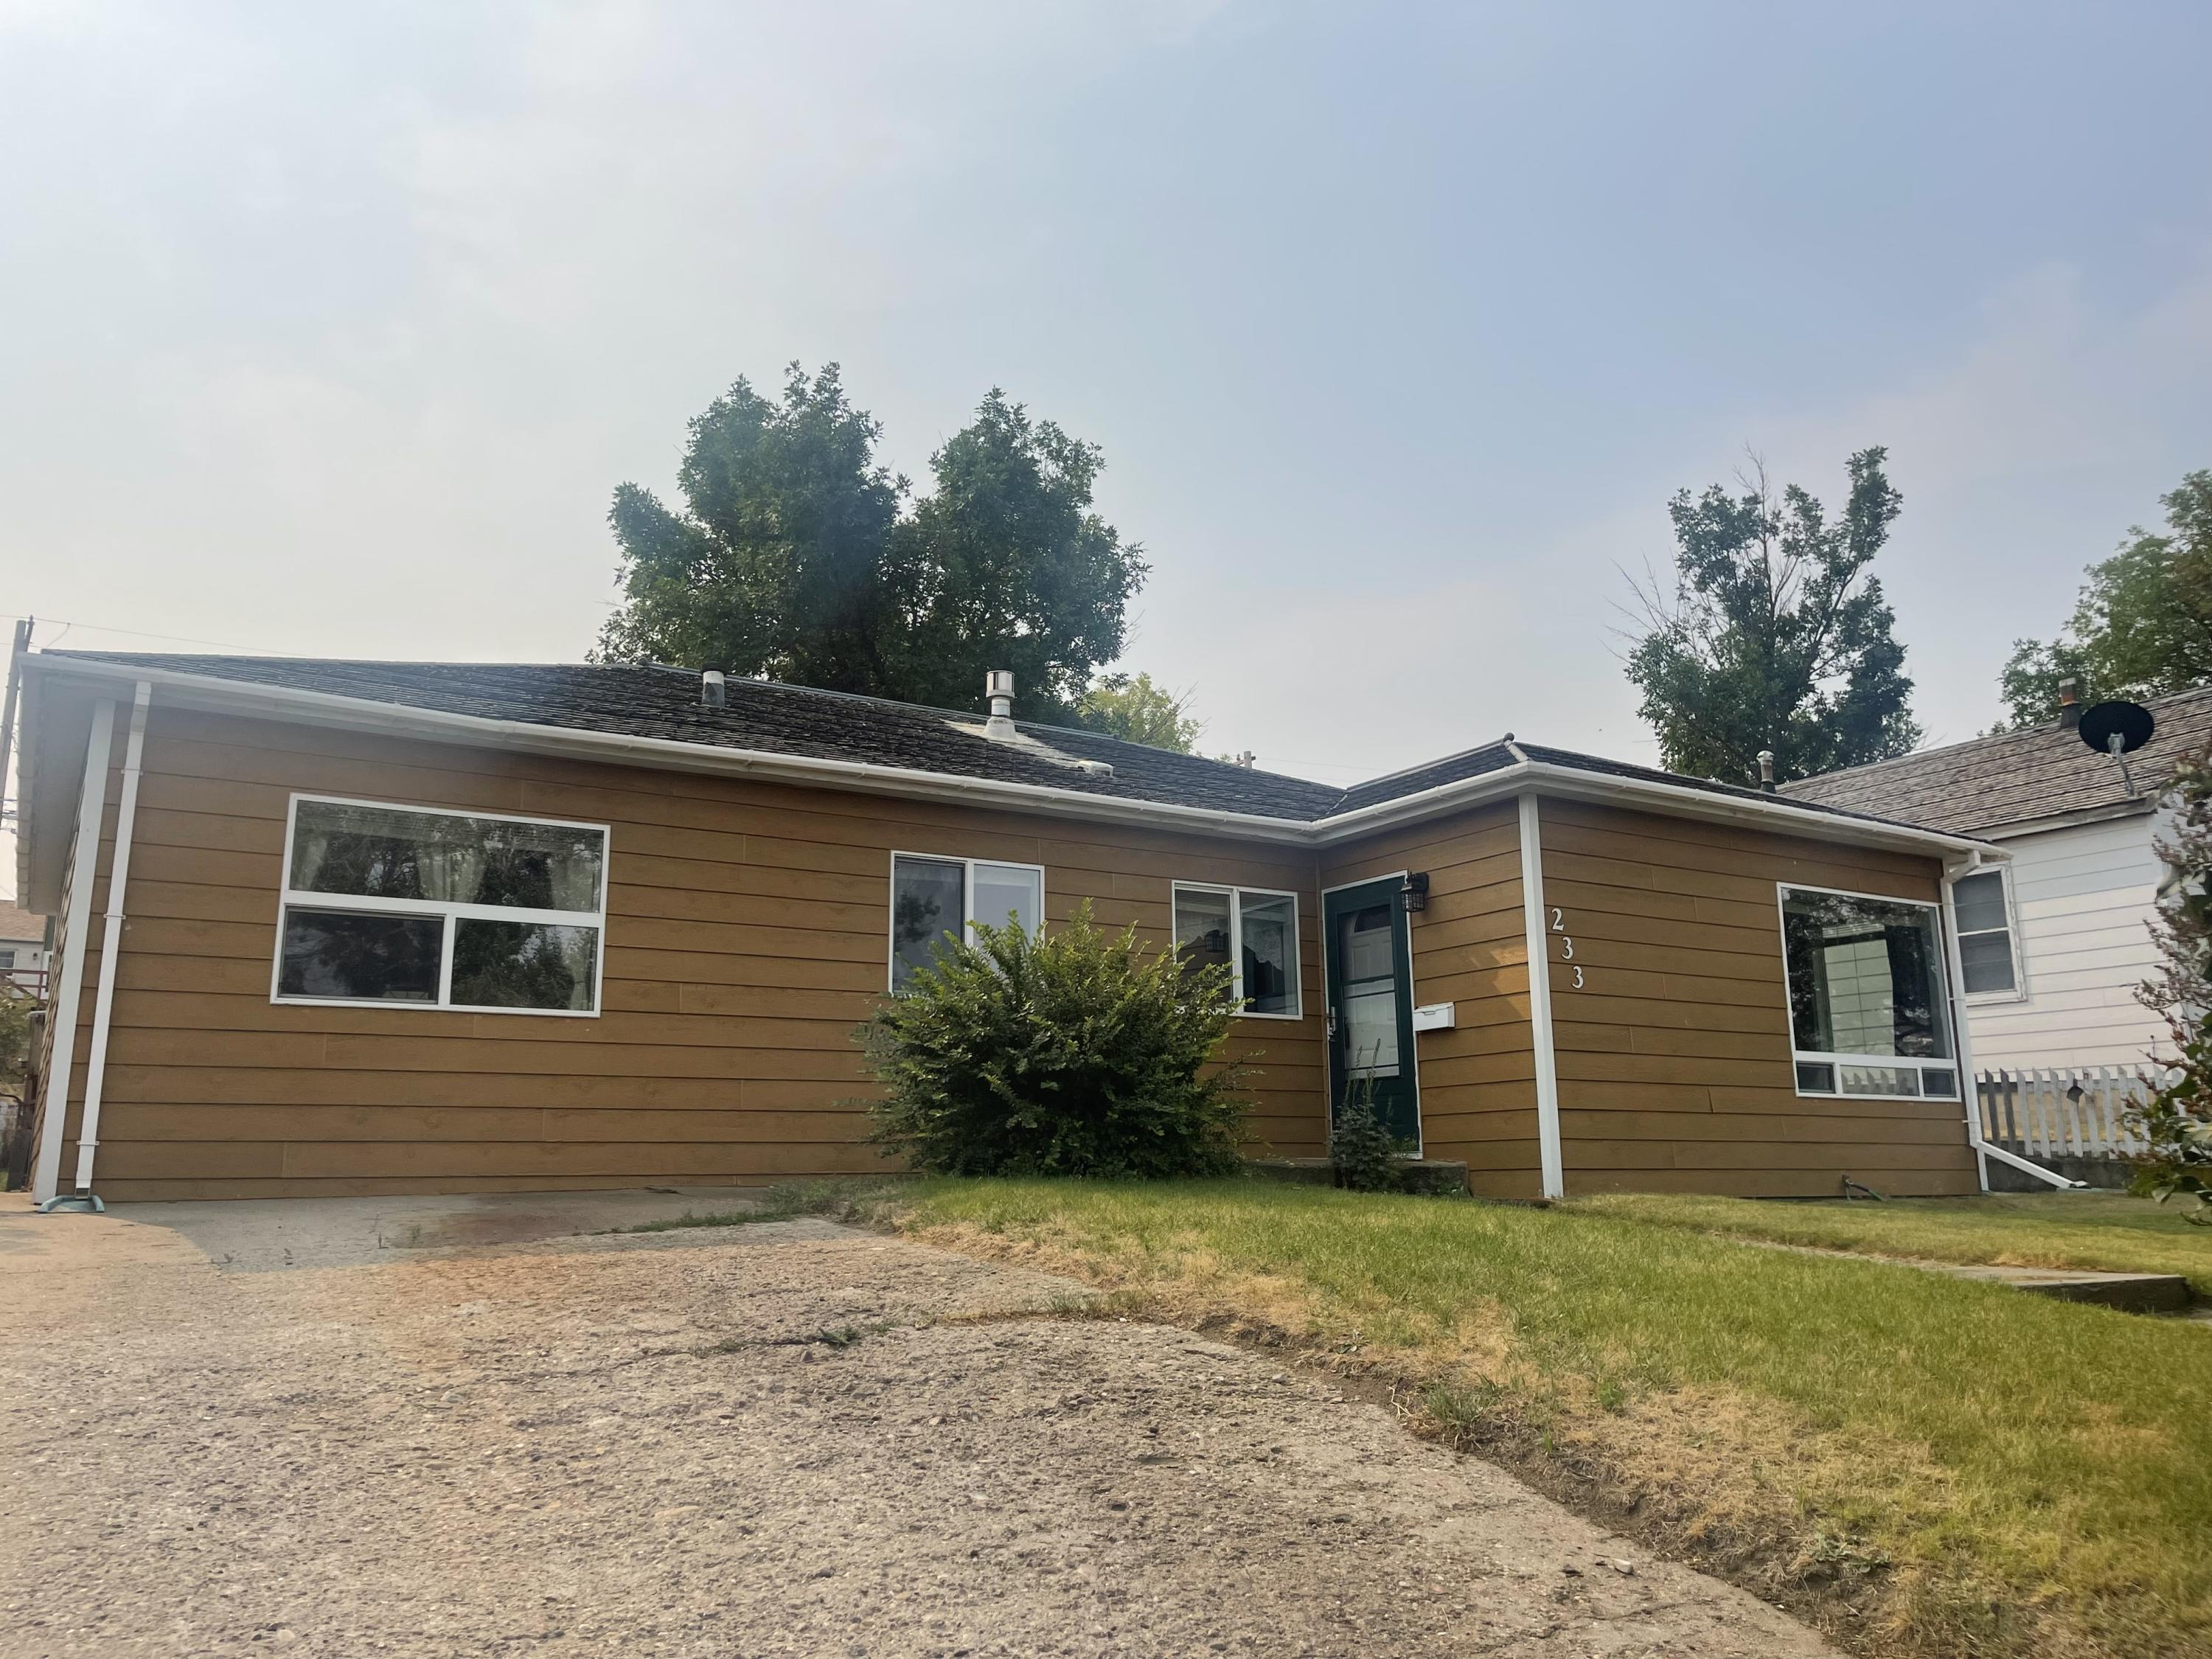 Large home with a 2 car garage. Updated siding, windows, kitchen, large dining area & living room with a gas stove. Main level has 2 beds, full bath, large living room, kitchen, dining and bonus area. Lower level has a family room, 2 non-conforming beds, storage room, updated full bath, laundry/utility room. Fenced in back yard with hot tub and deck. Off street parking. Roof, trim & garage door recently painted. Replacing south facing bedroom window, Replaced internal sewer line in laundry room with pvc. Call Jessica Hedges at 406-845-3156, or your real estate professional.